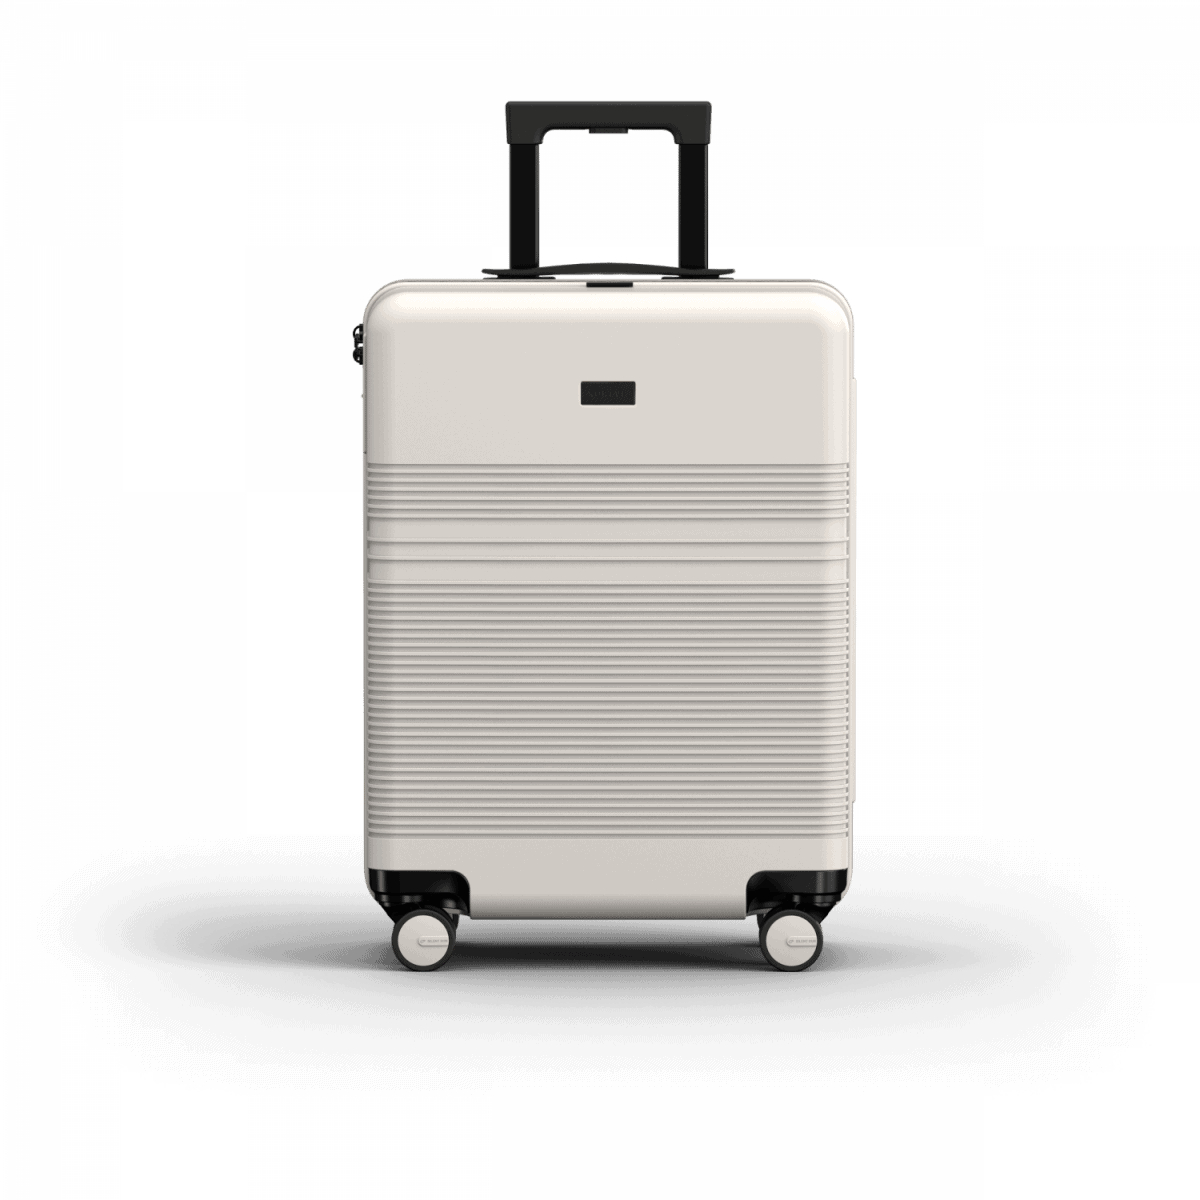 NORTVI sustainable design suitcase Sand White Essential 36 L gemaakt van duurzaam materiaal.